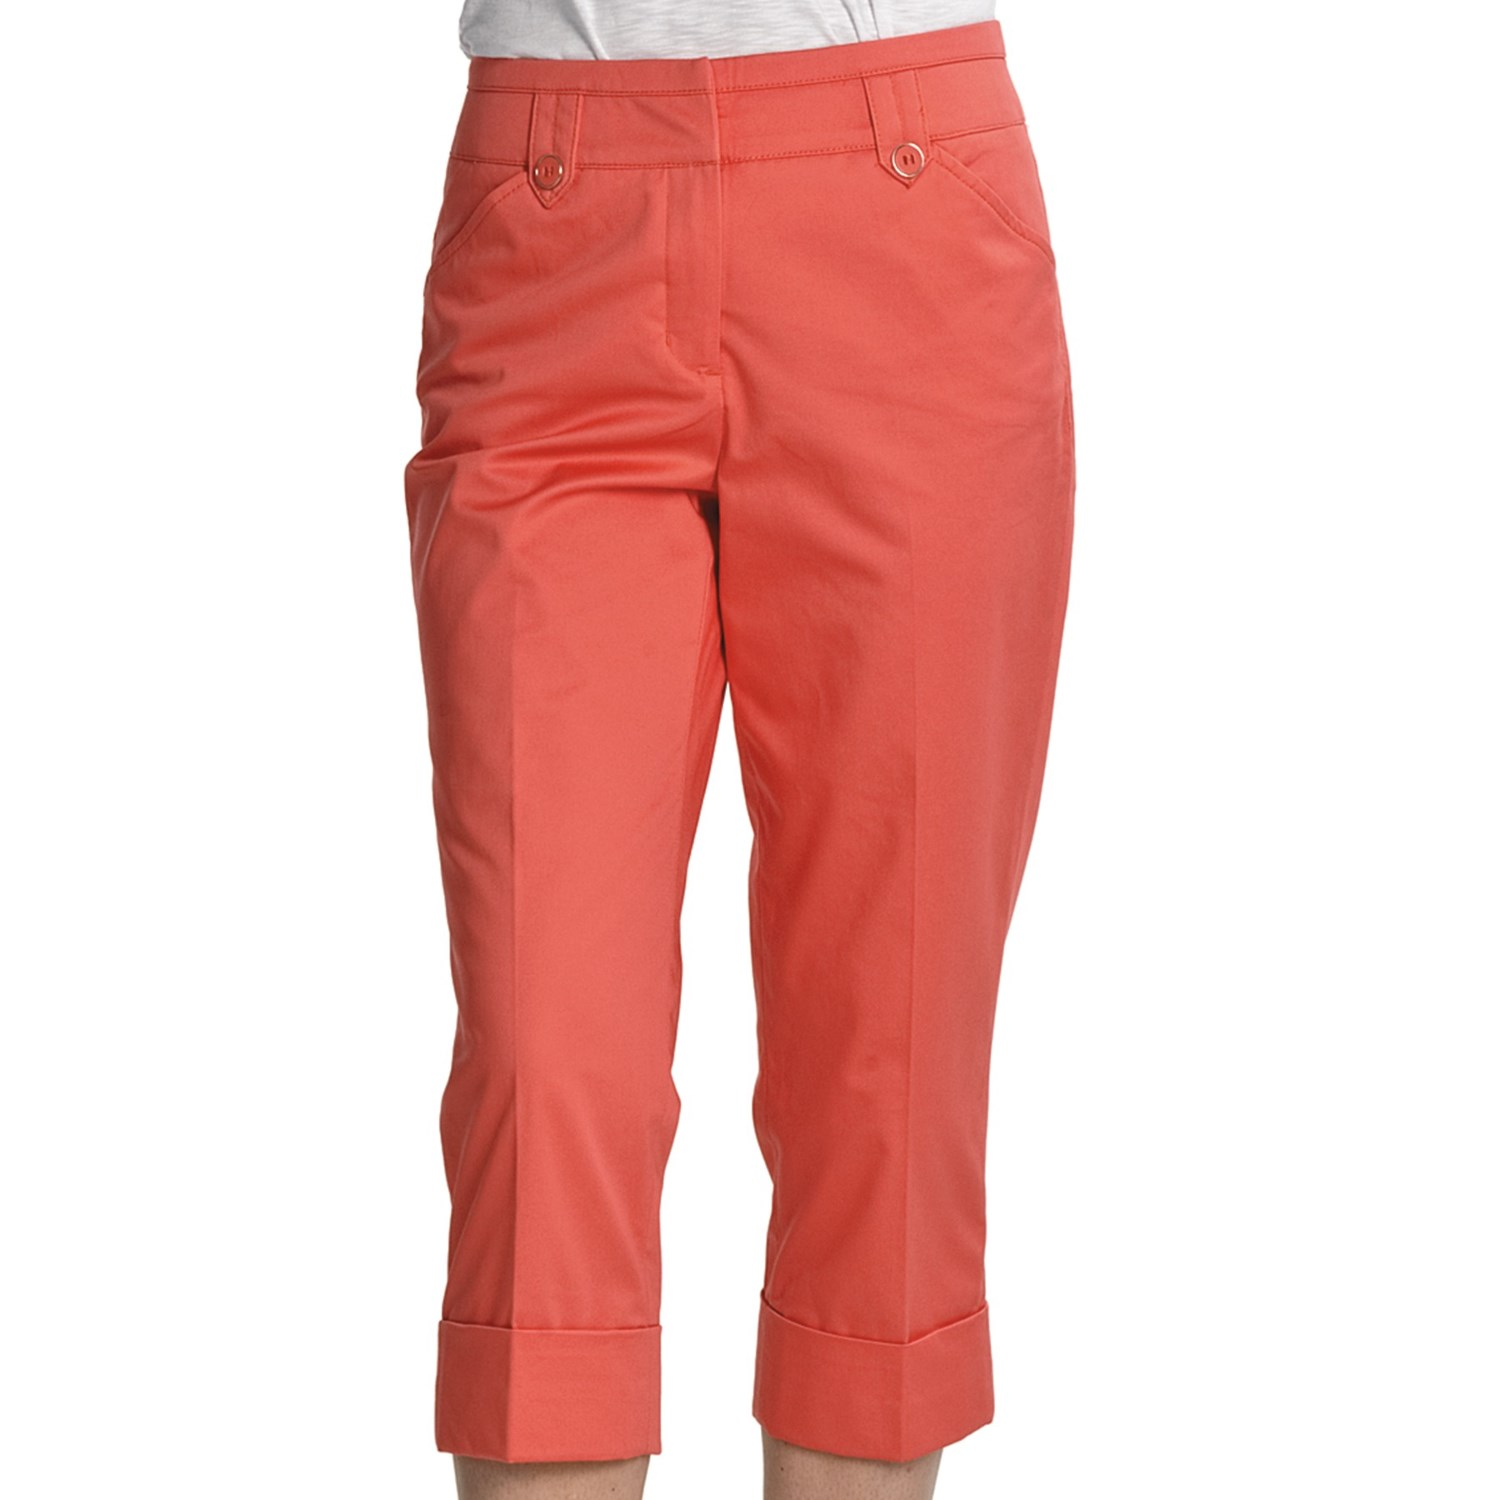 More Details Vince Skinny Cargo Cotton Pants Details Vince cargo pants in washed Japanese stretch twill. Approx. 29